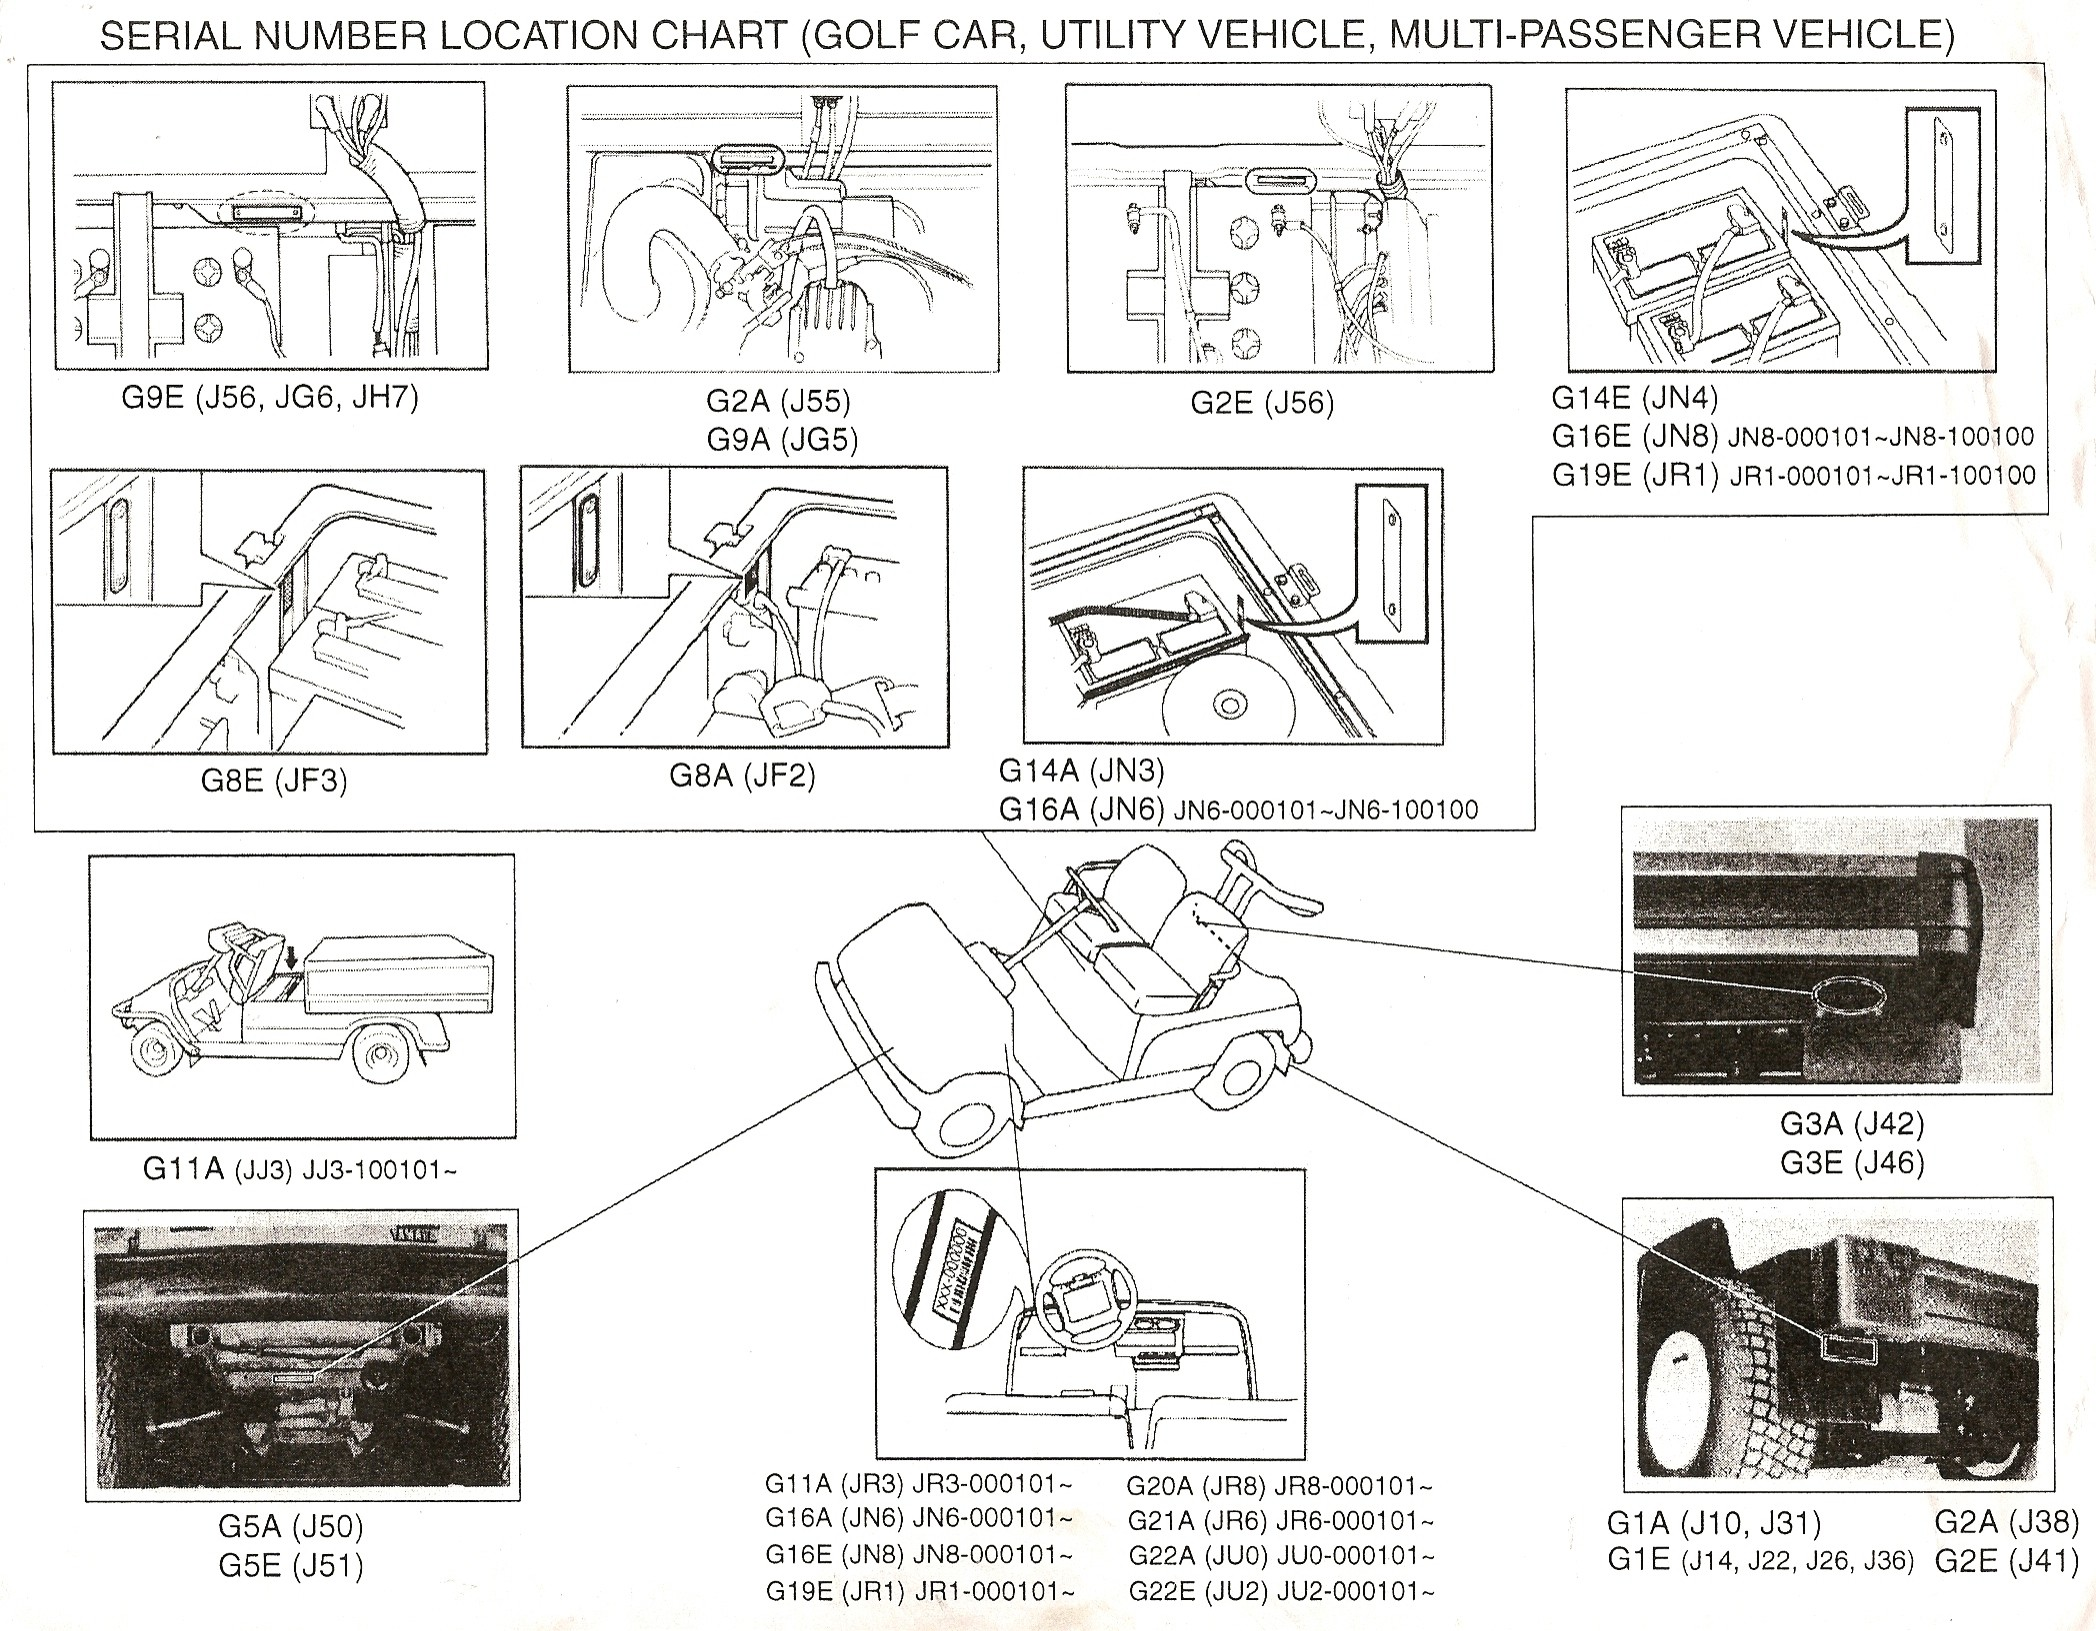 Web YAMAHA GOLF CAR SERIAL NUMBER LOCATOR yamaha wiring diagrams readingrat net yamaha g16 golf cart wiring diagram at reclaimingppi.co